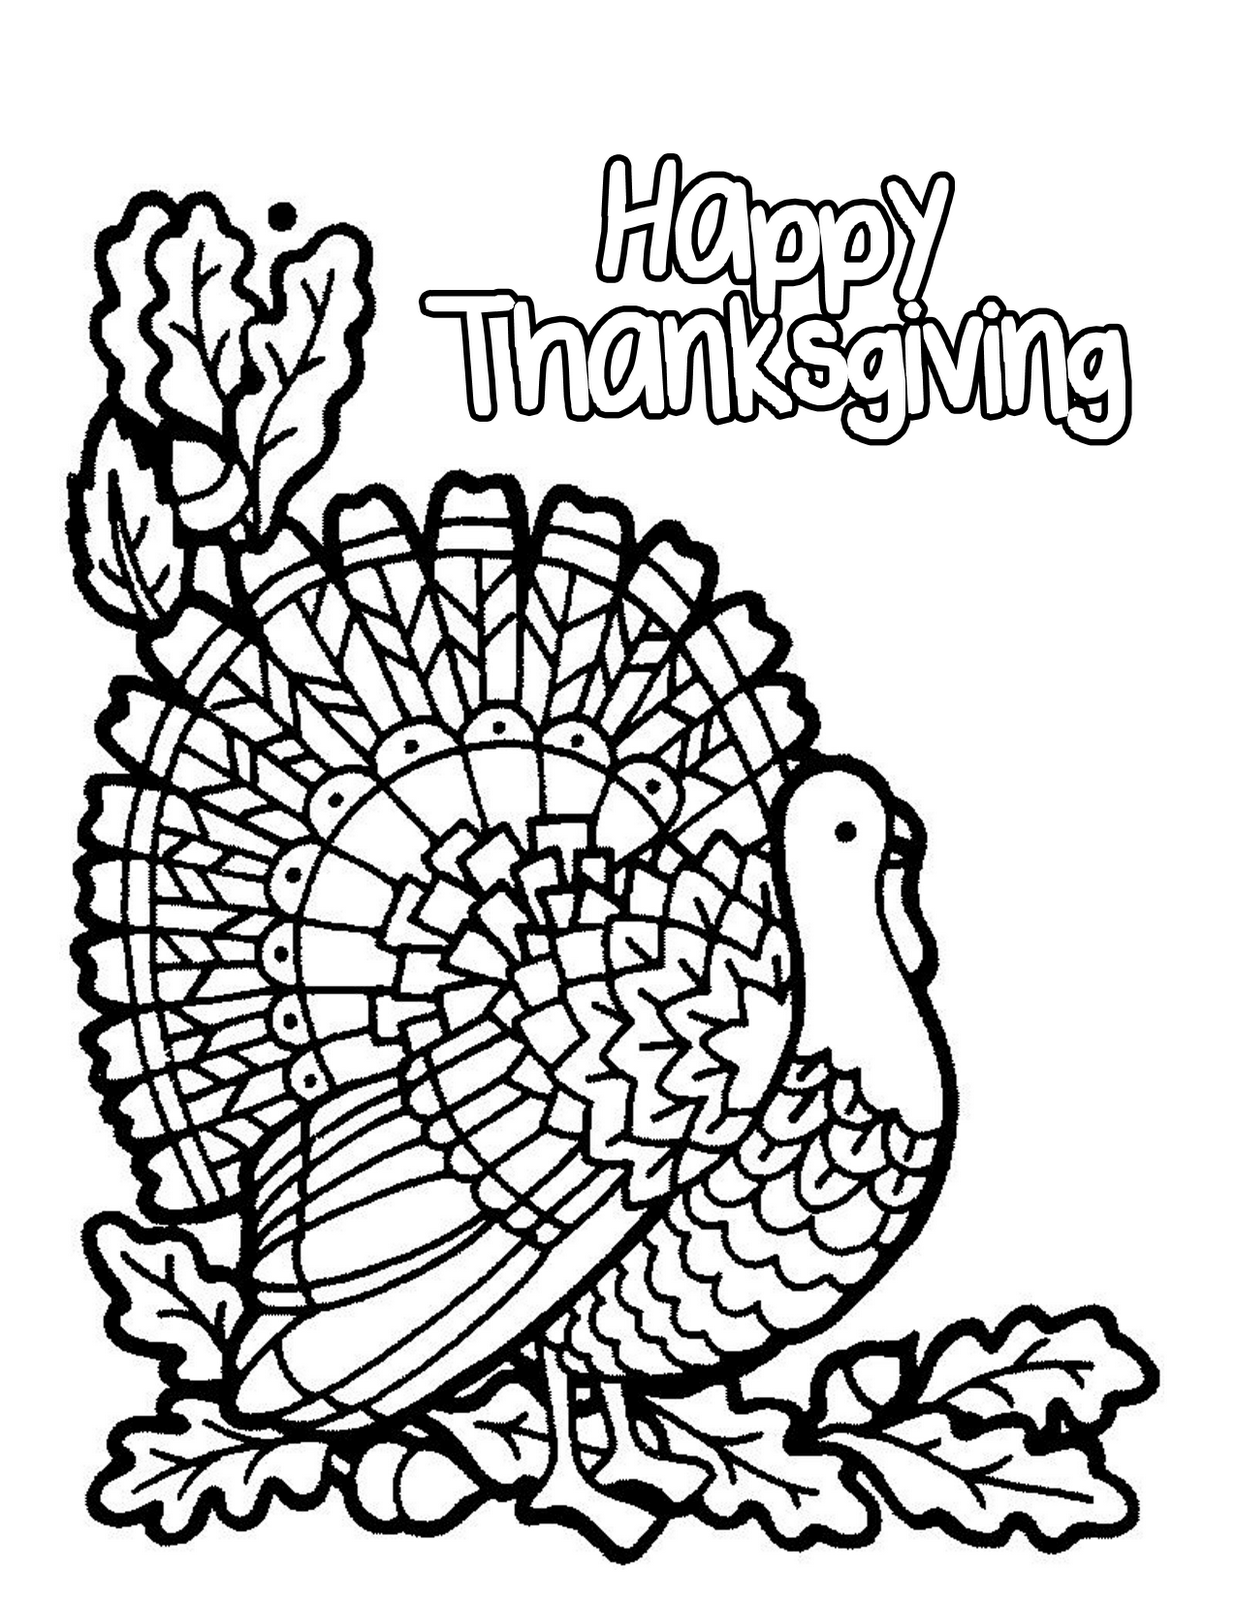 1236x1600 Turkey Happy Thanksgiving Coloring Pages To Print Sheets On Day